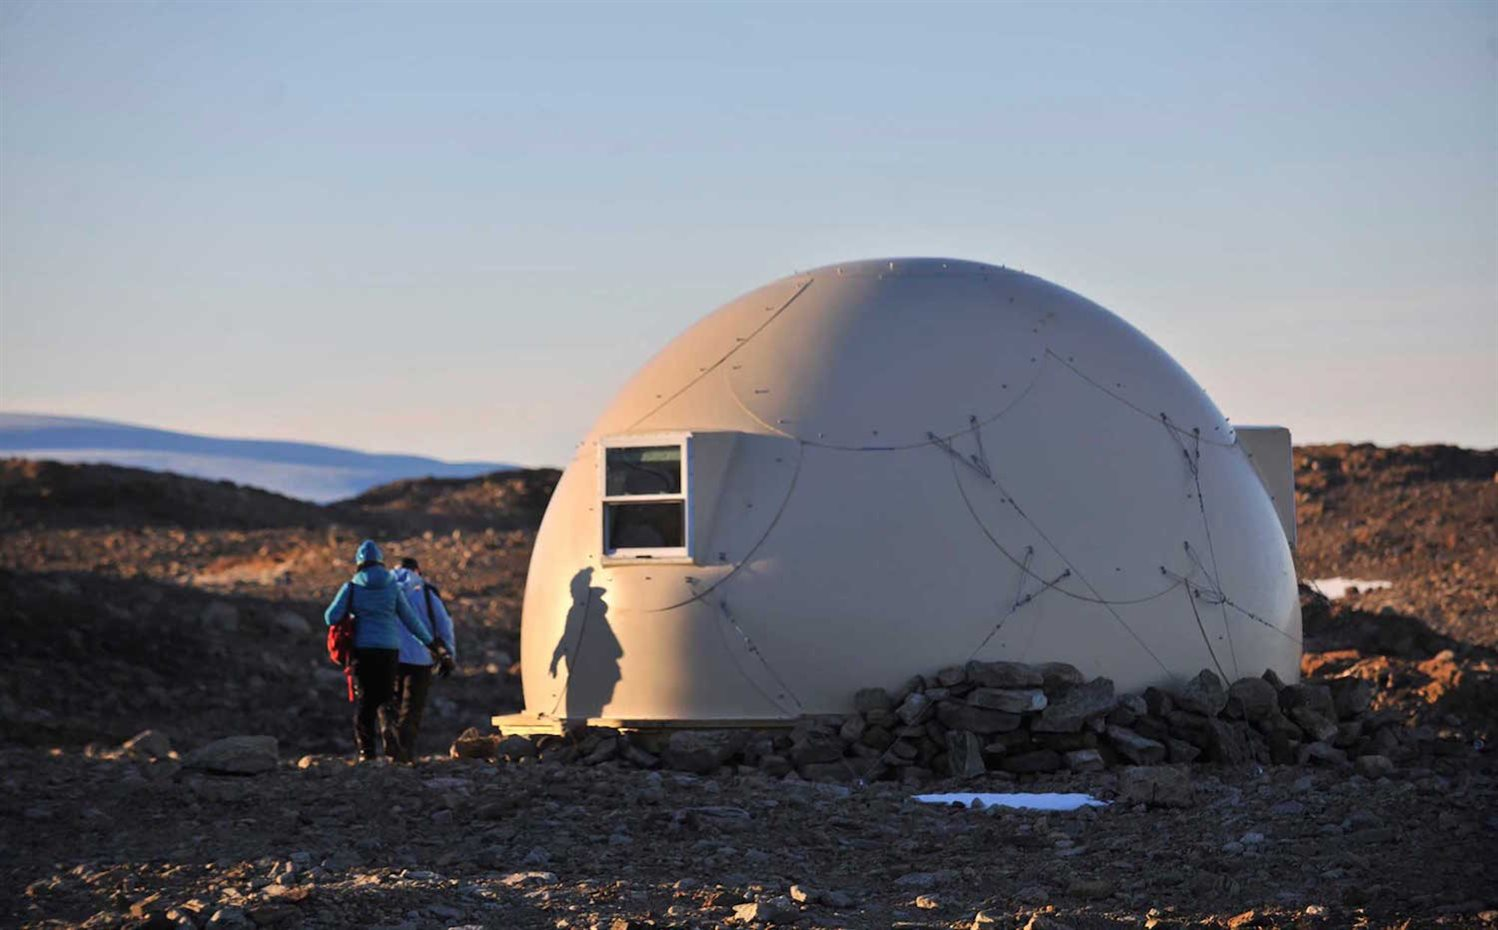 Fibre glass pods of White Desert's Camp. Campamento White Desert